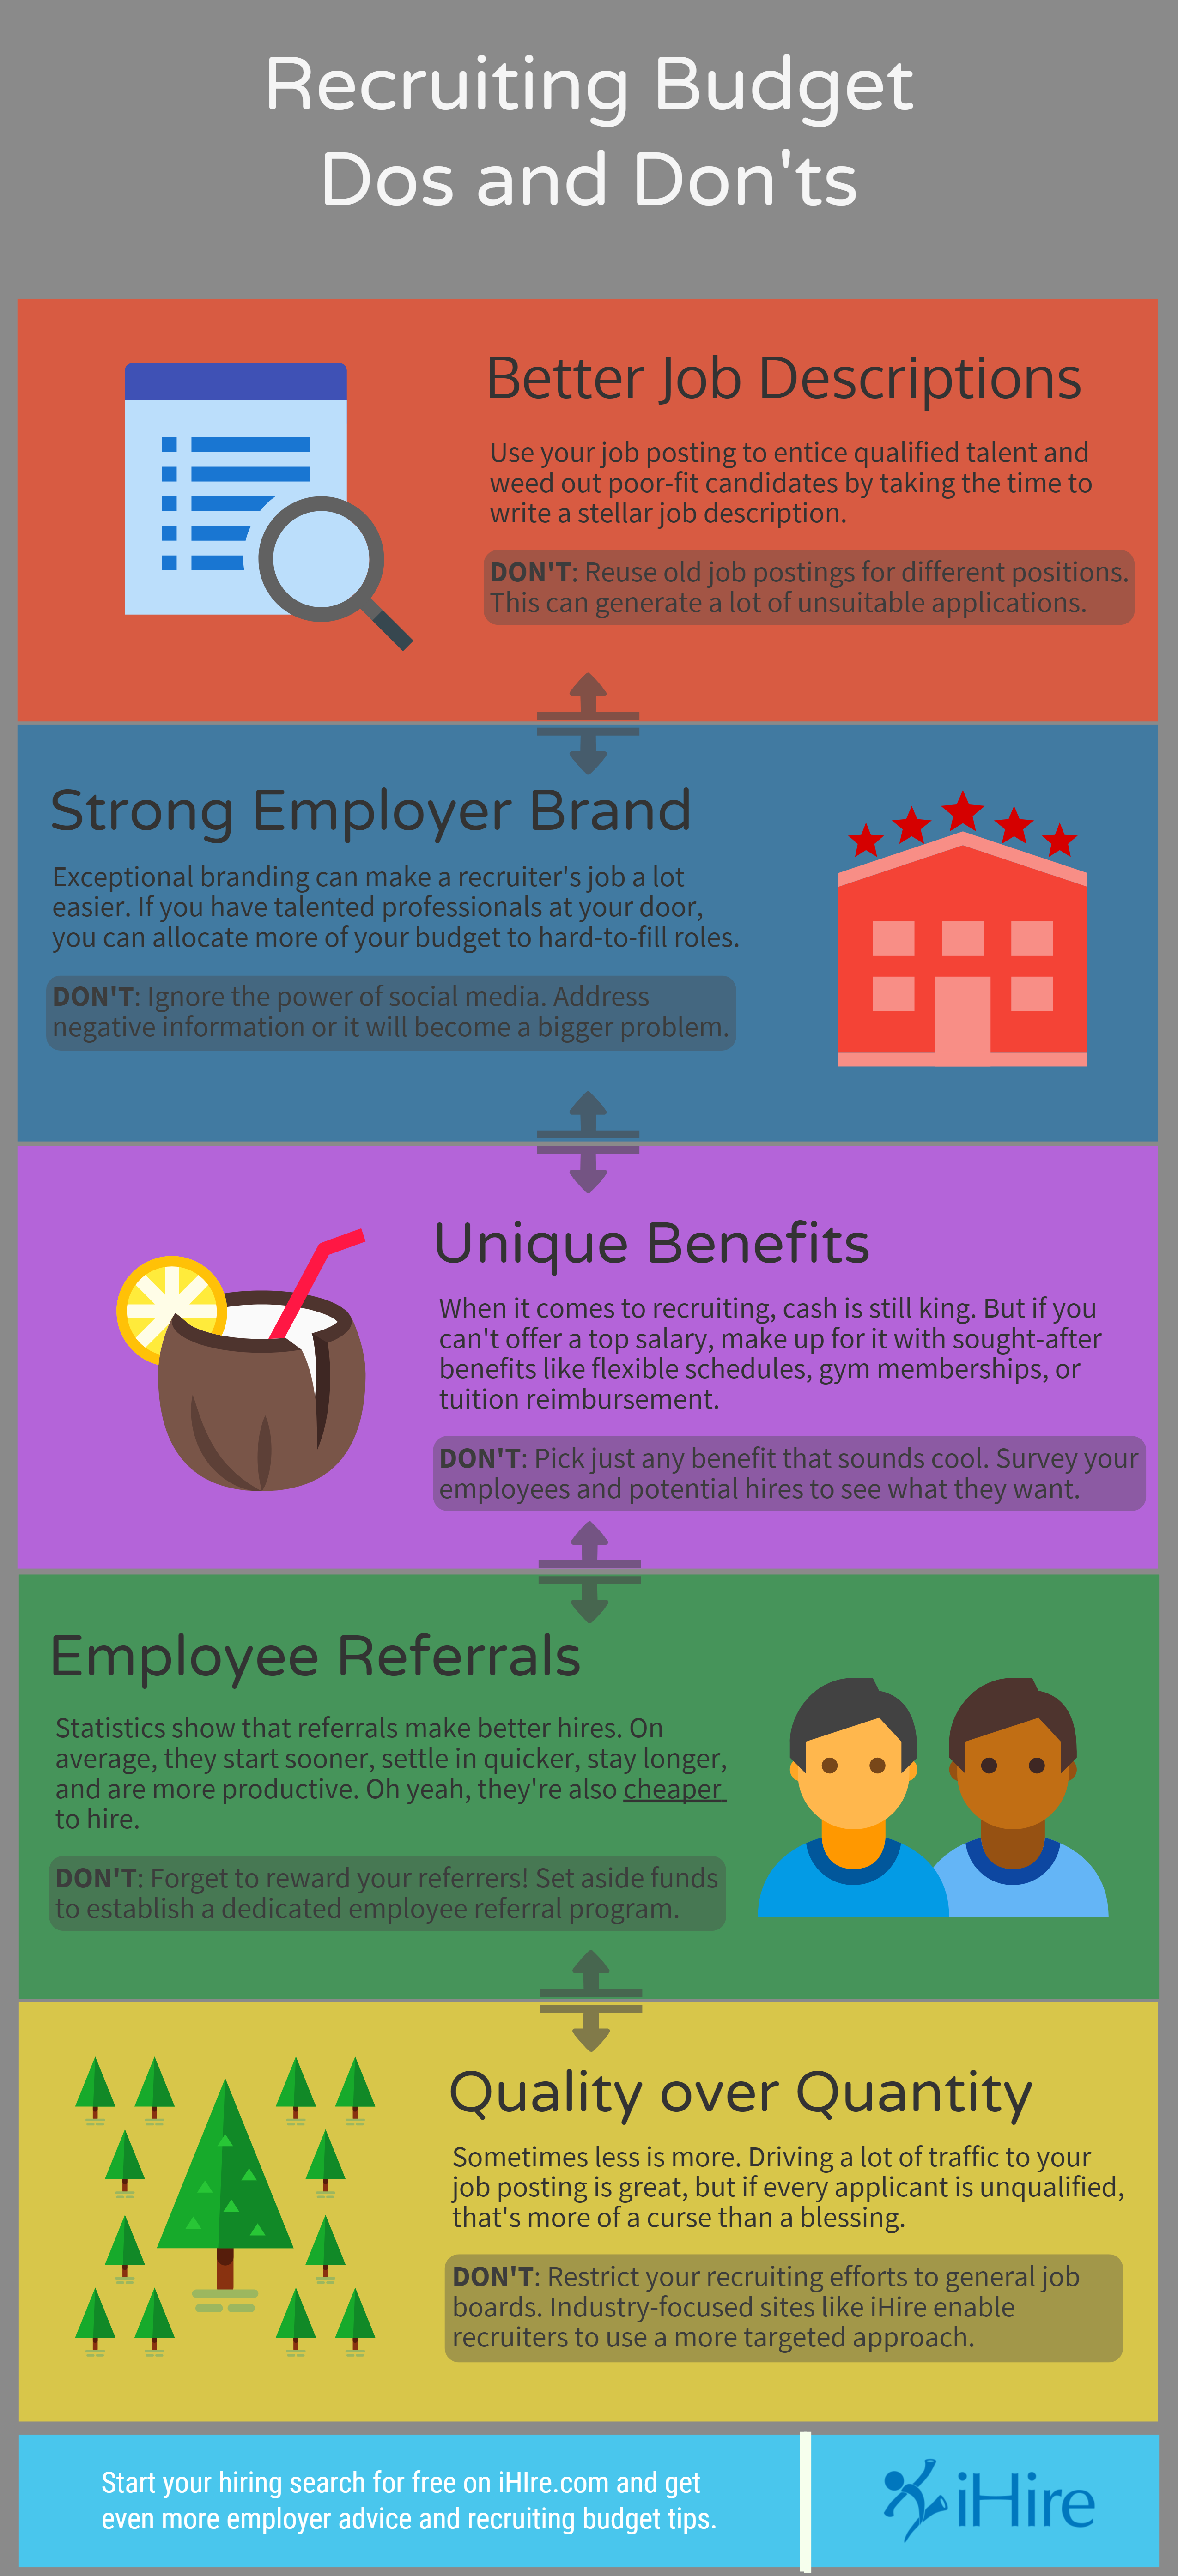 Recruiting budget dos and don'ts infographic